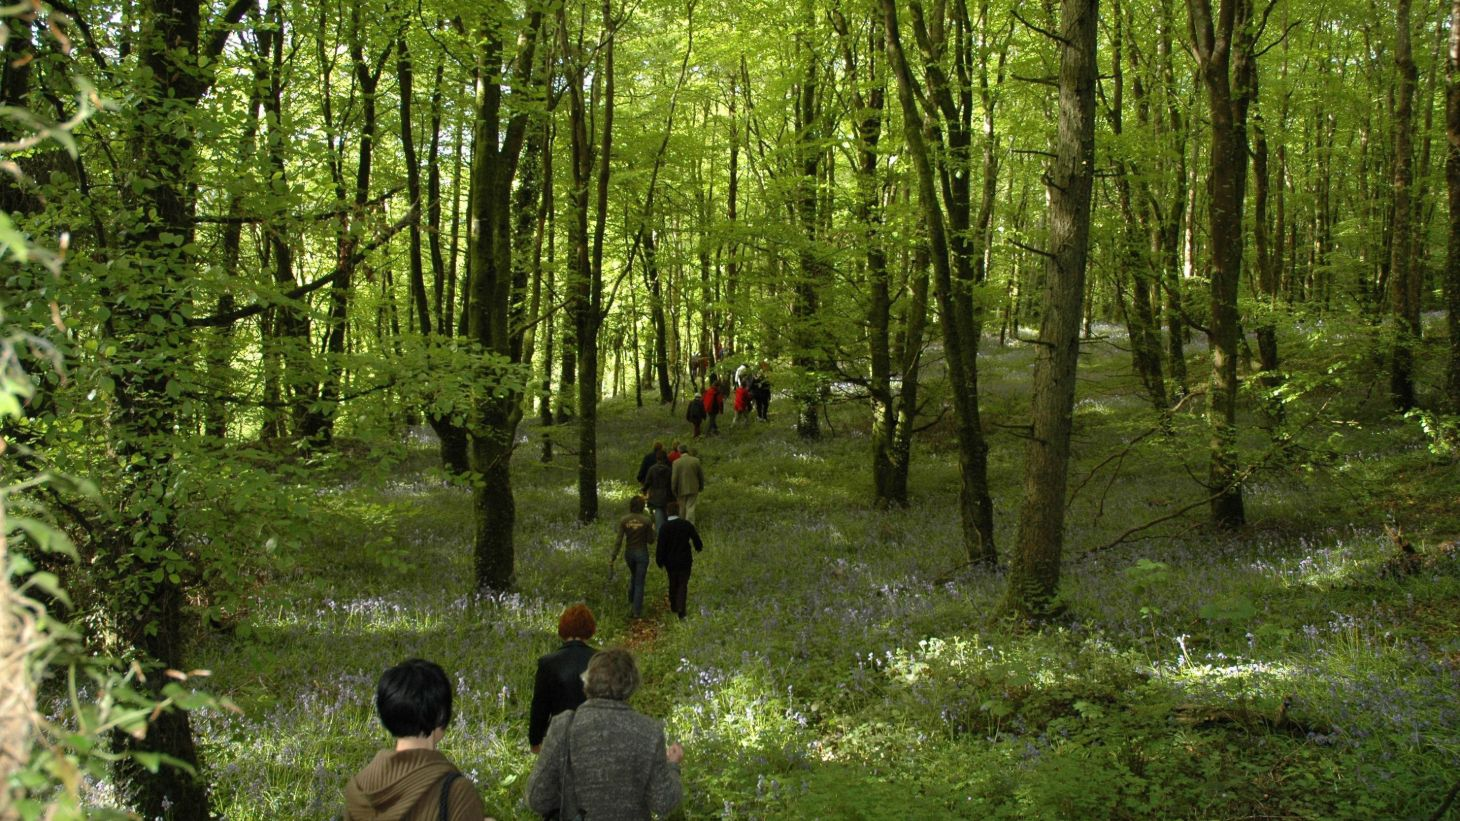 Explore the magical woods on Slieve Bloom.